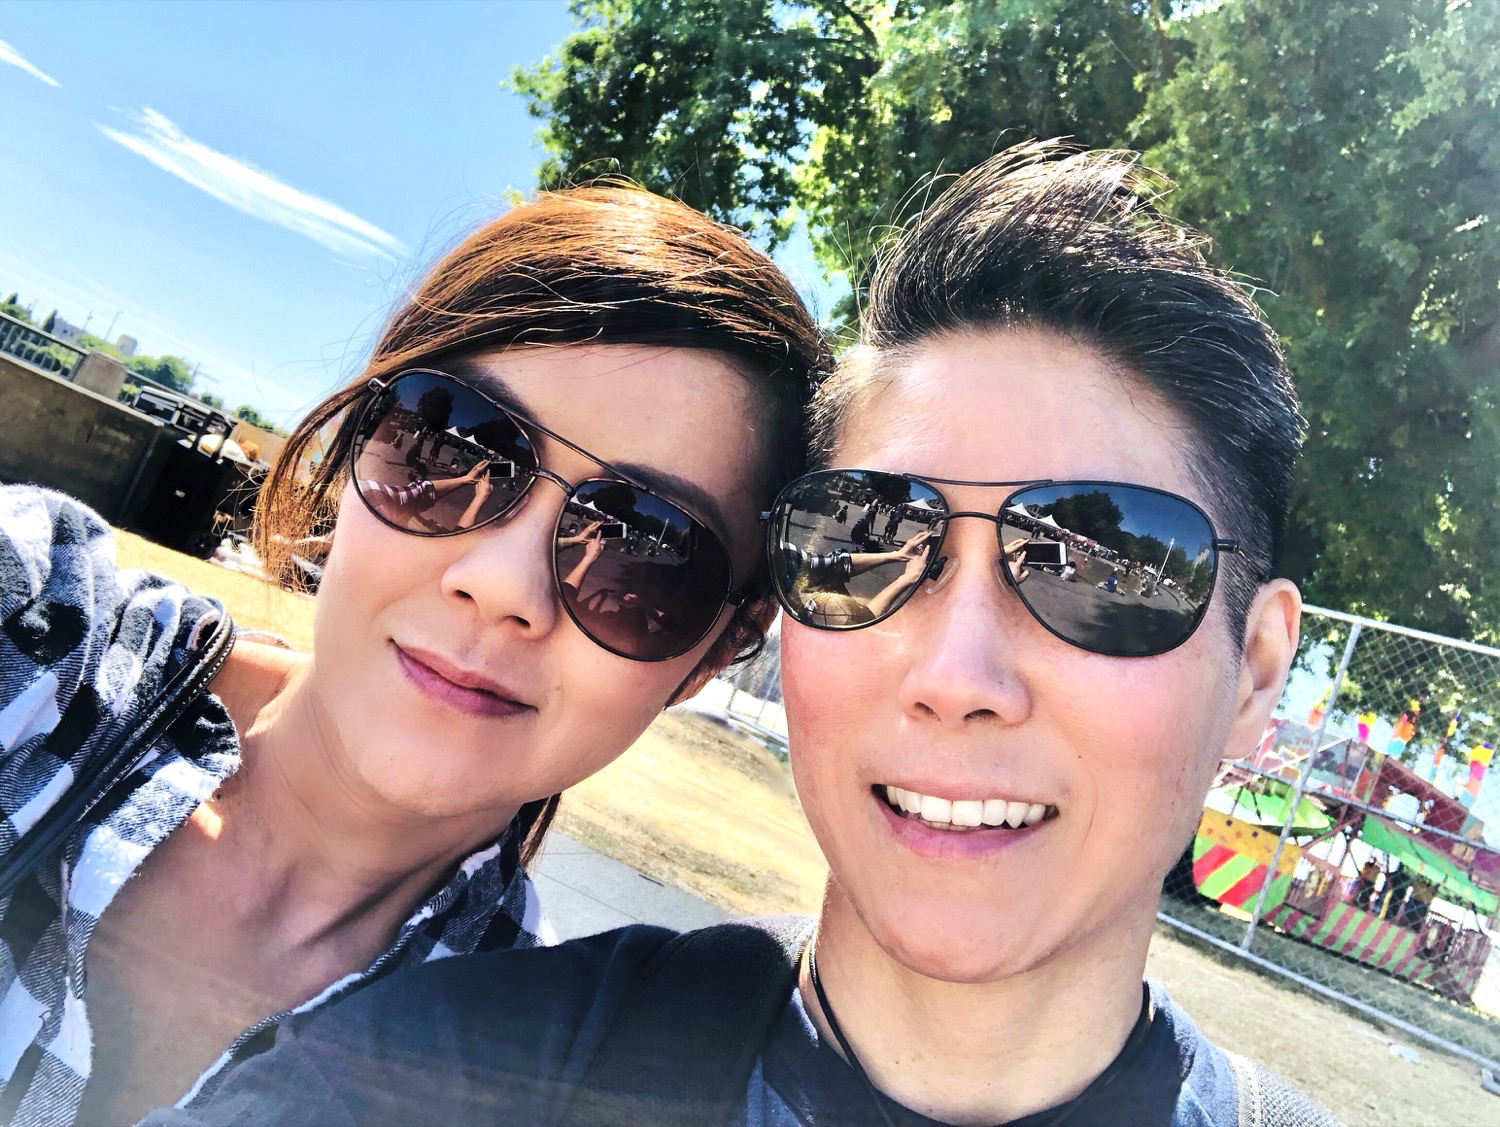 Selfie on our day at Portland Rose City Festival